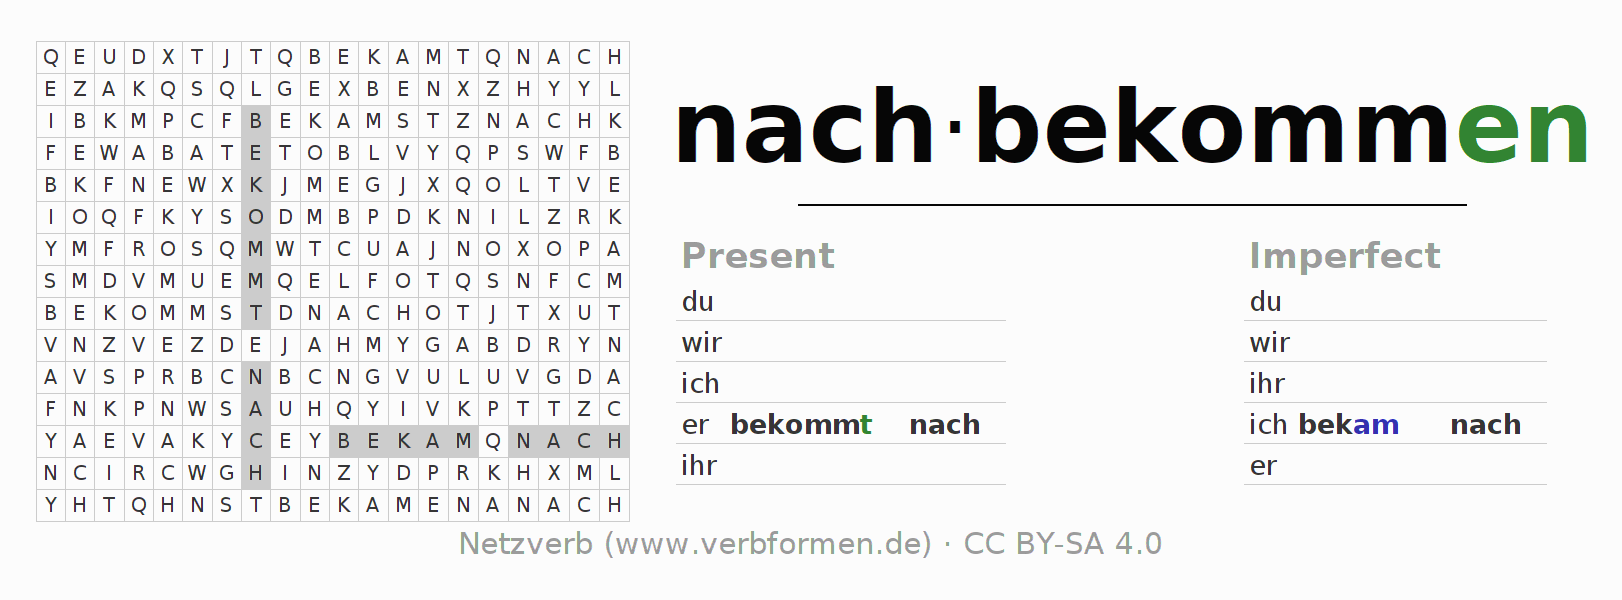 Word search puzzle for the conjugation of the verb nachbekommen